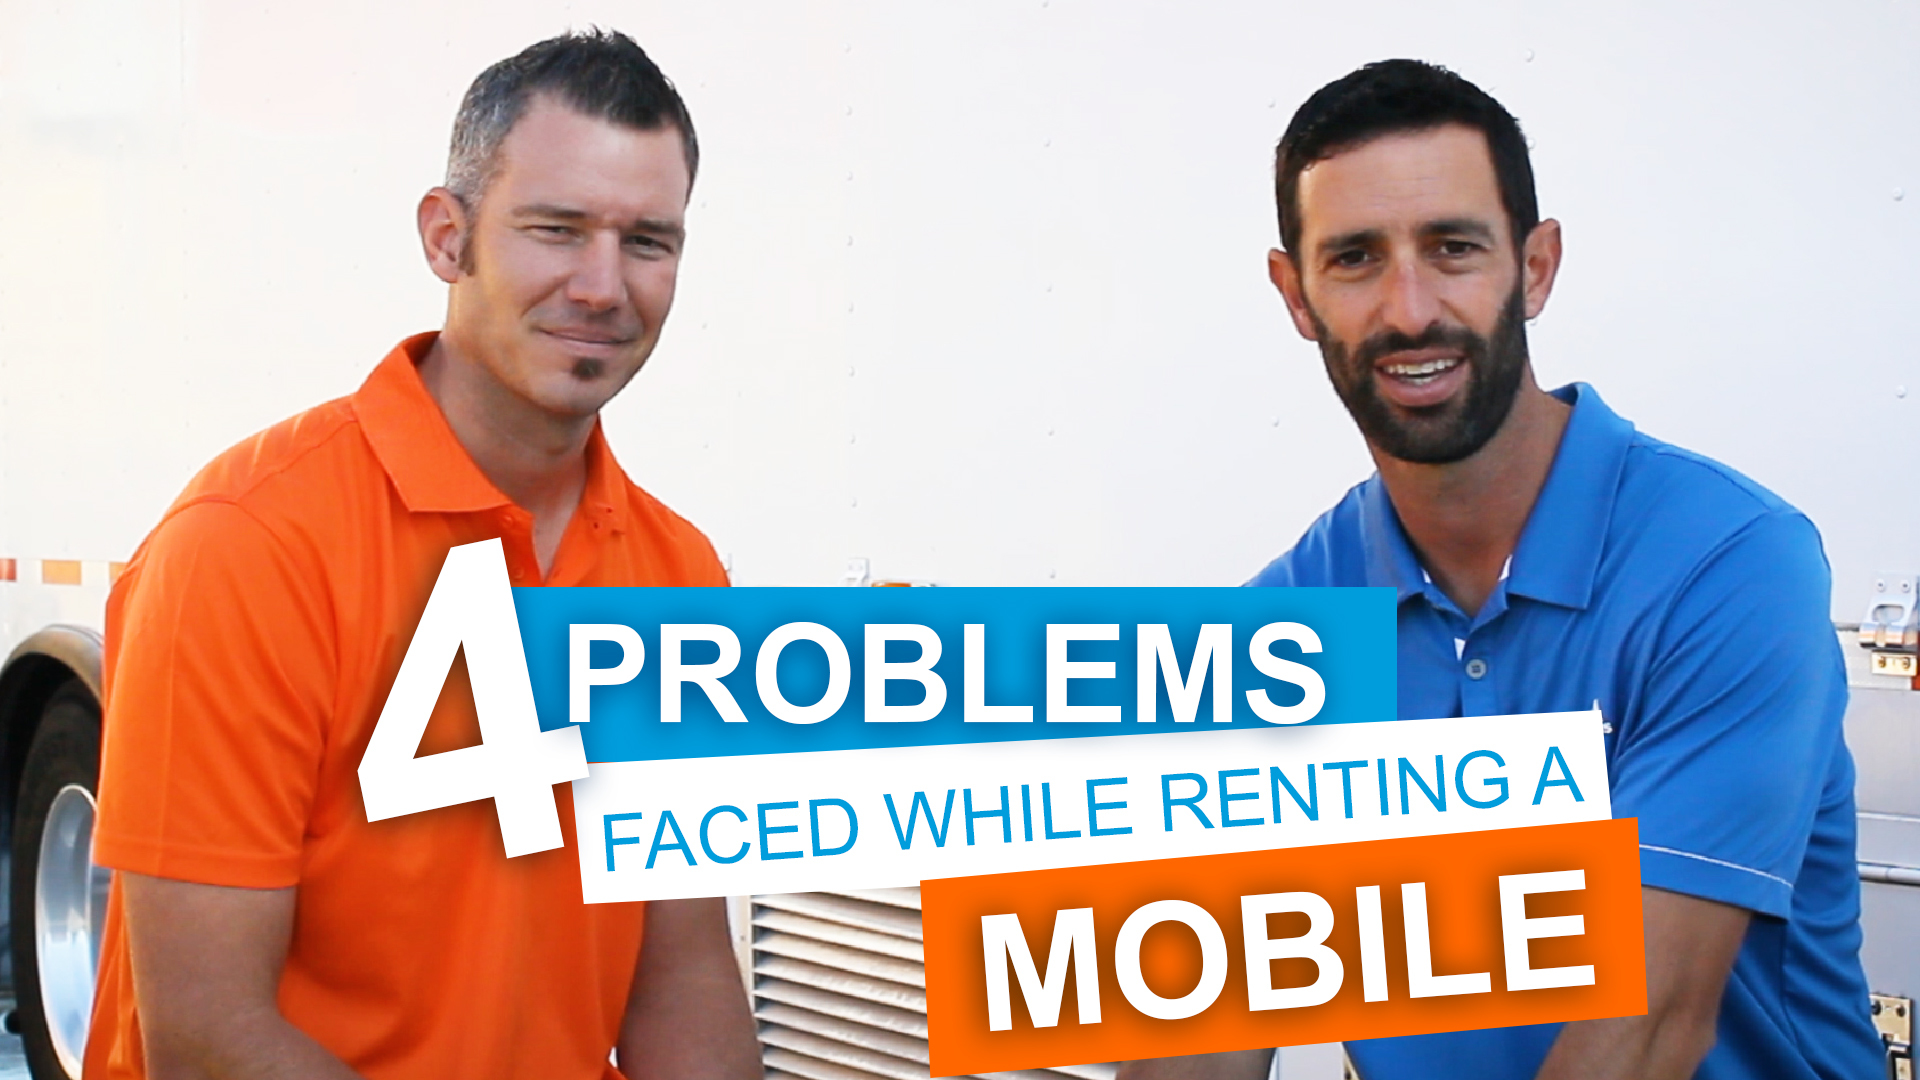 4 Problems Faced While Renting a Mobile